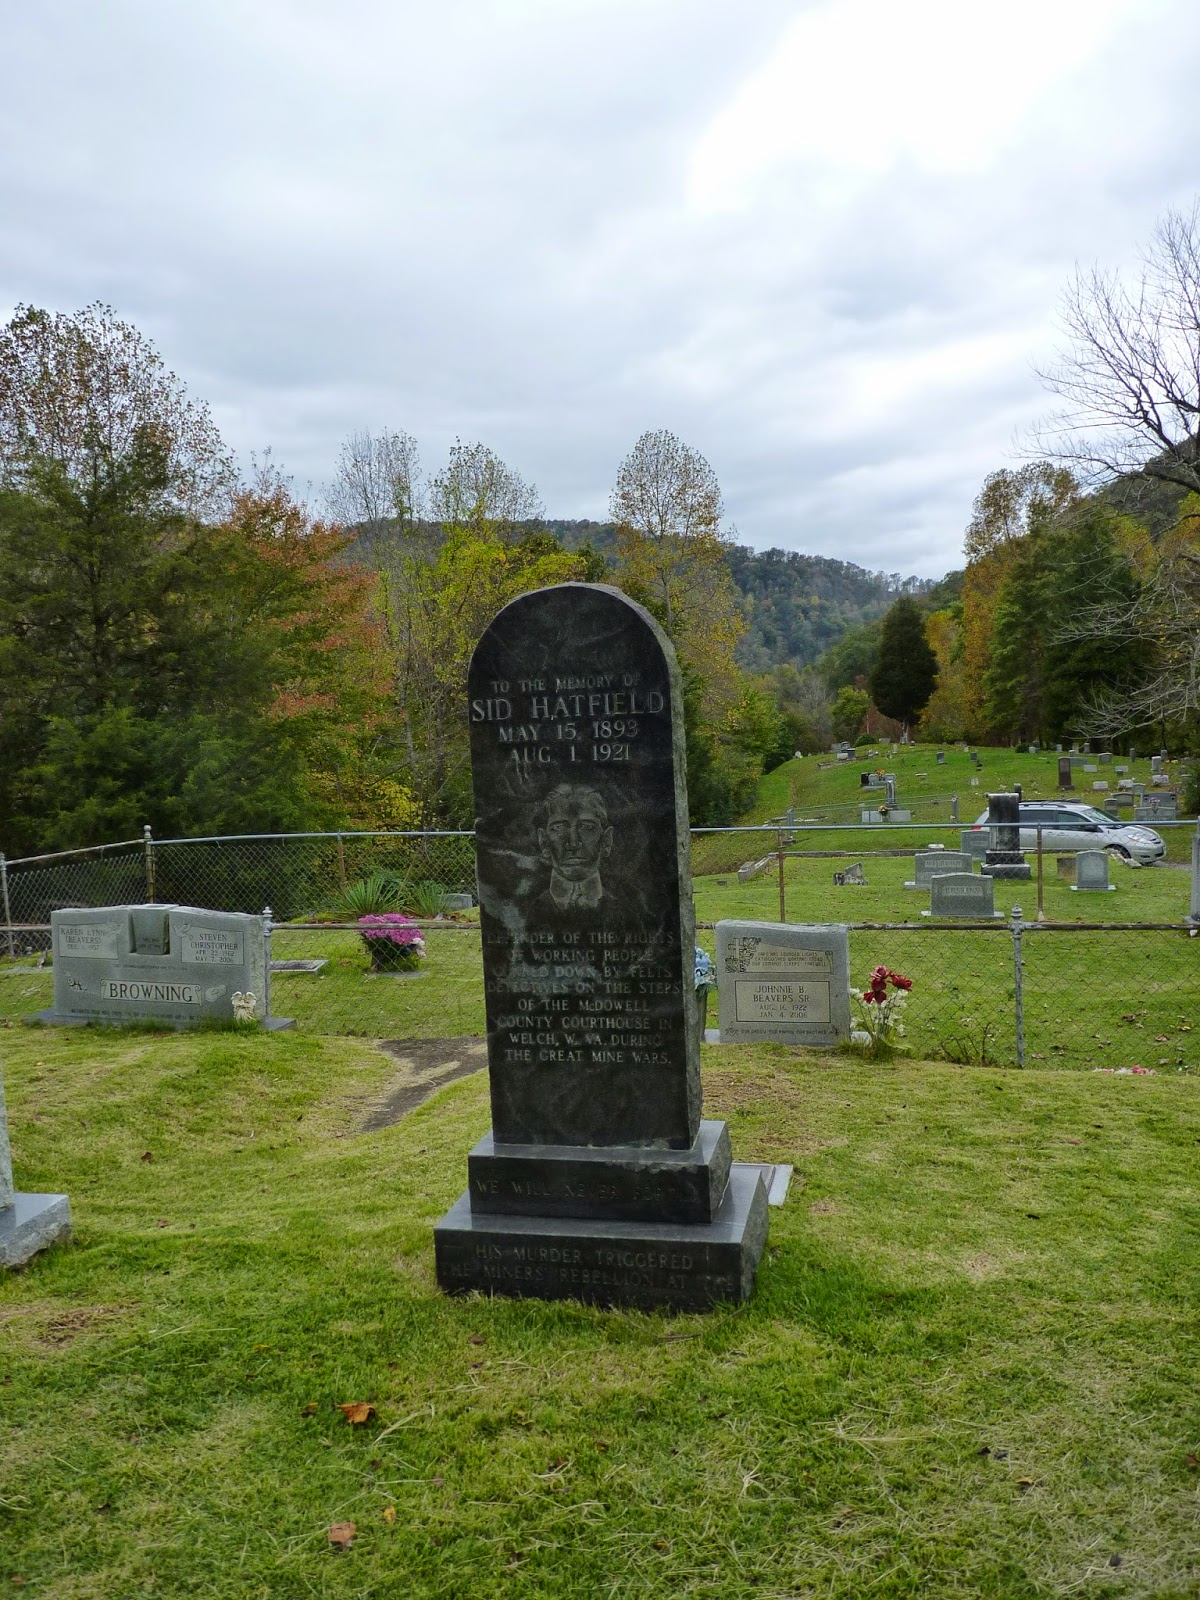 a review of the matewan crisis in the tug valley Best matewan b&bs on tripadvisor: find 46 traveler reviews, 24 candid photos, and prices for bed and breakfasts in matewan, wv.